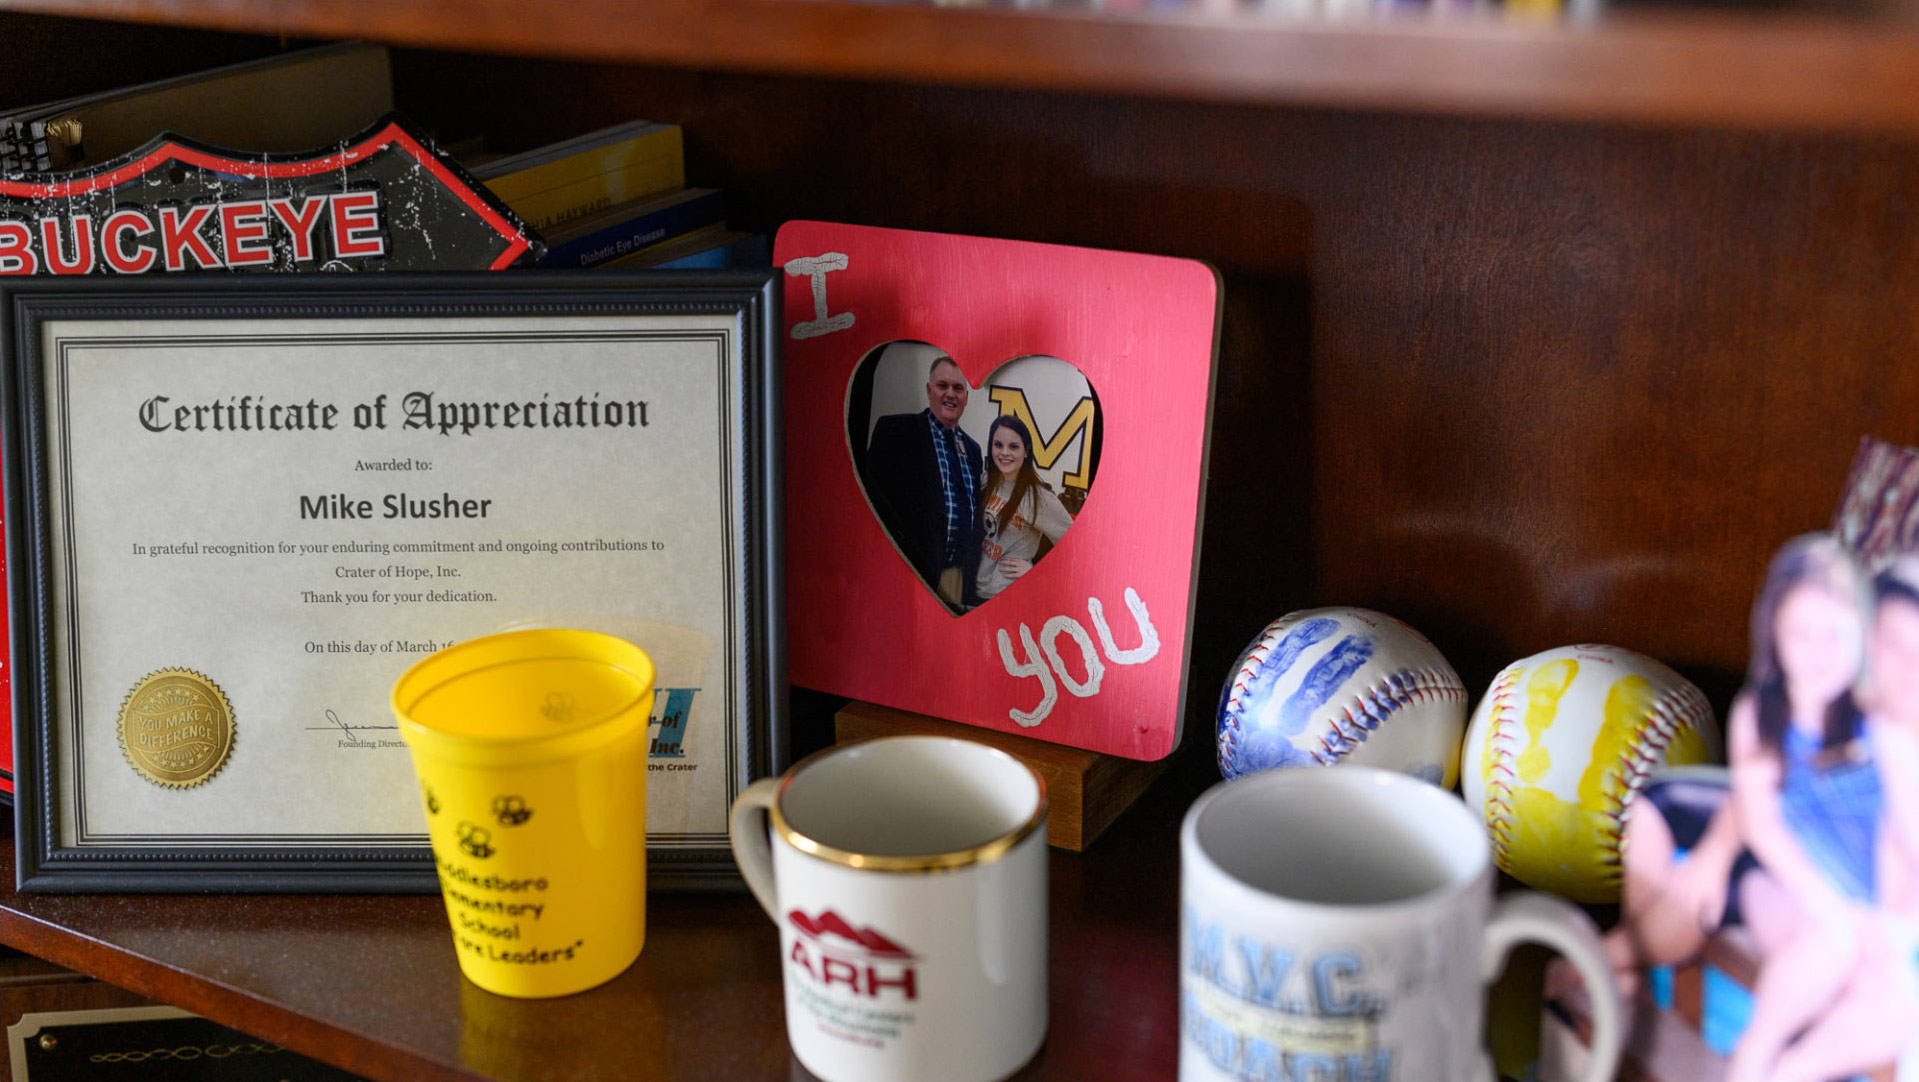 A close-up photo of a shelf featuring a framed picture of Michael and his daughter, mugs, baseballs and a certificate of appreciation.